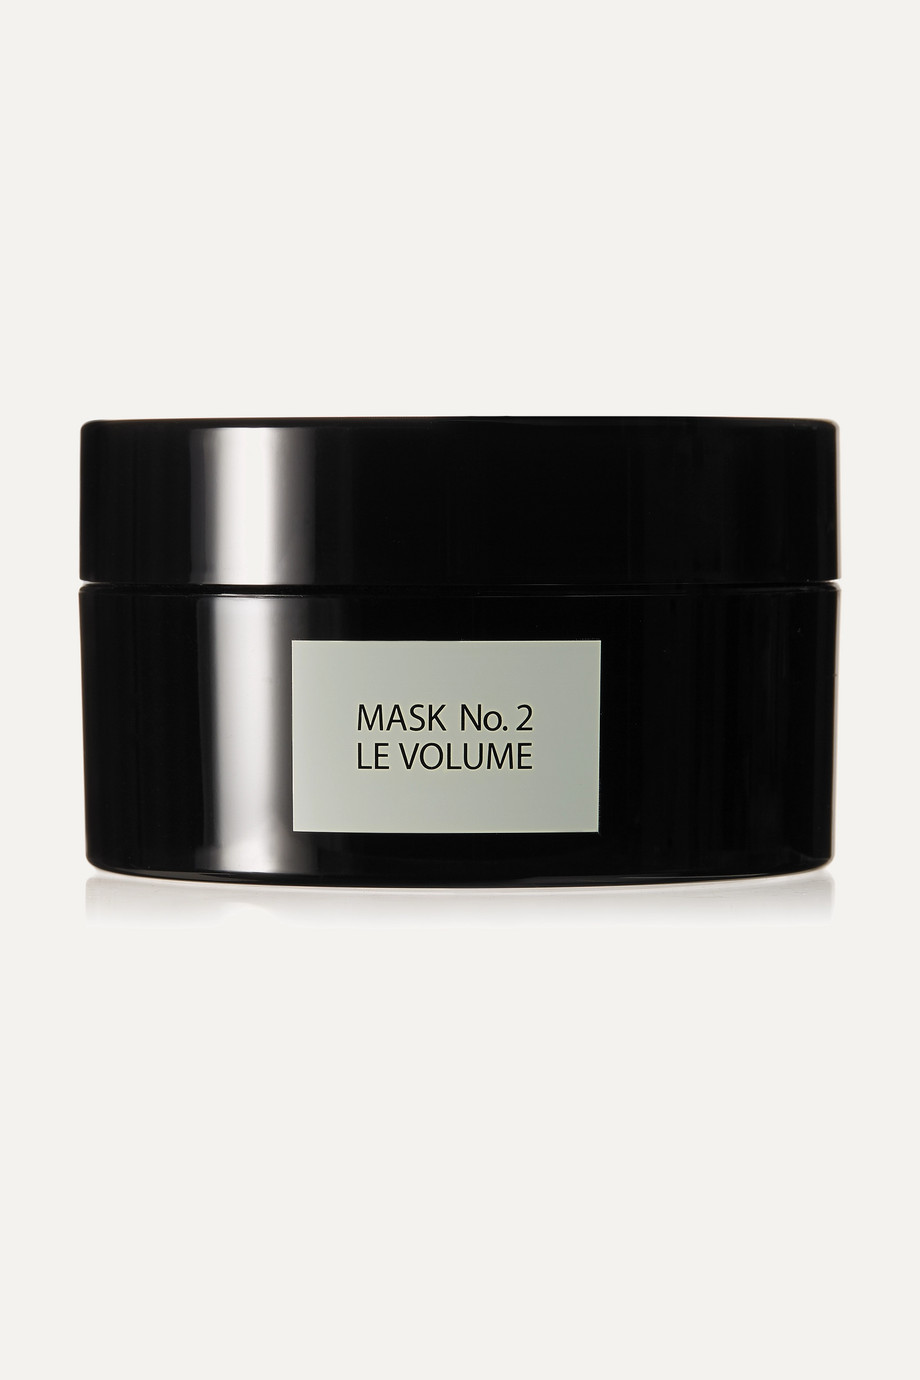 DAVID MALLETT Mask No.2: Le Volume, 180ml